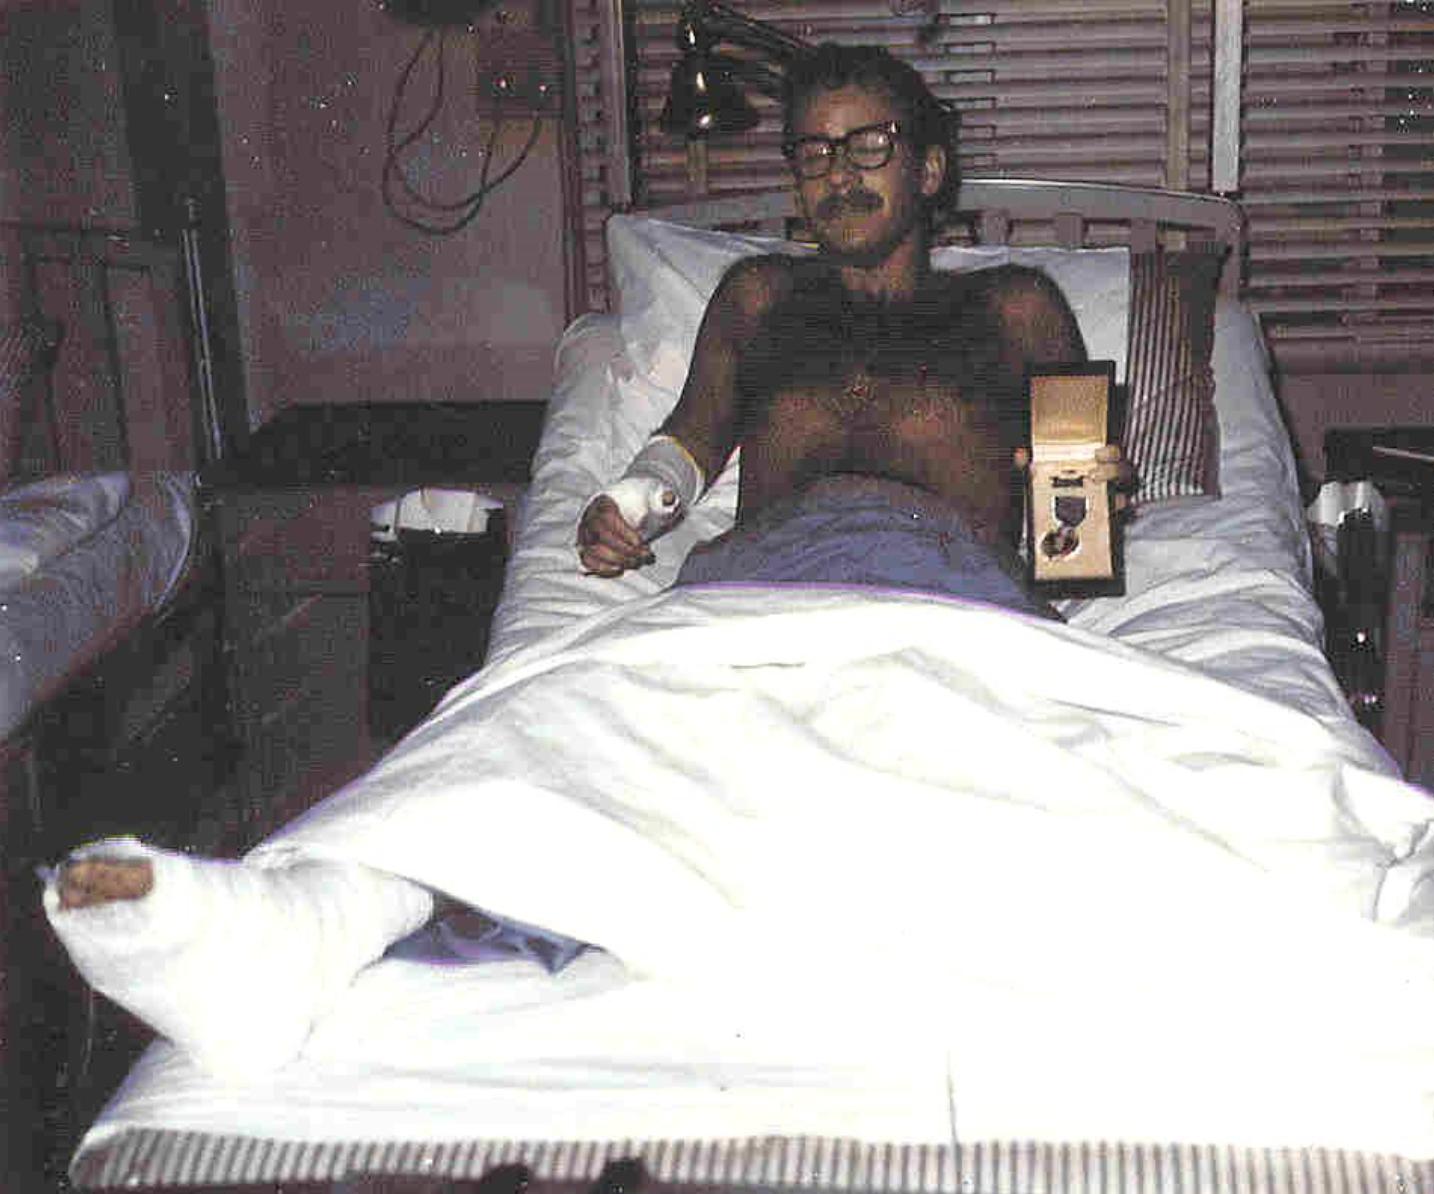 NCO Richard Hogue hospitalized after being wounded 1/27/1970